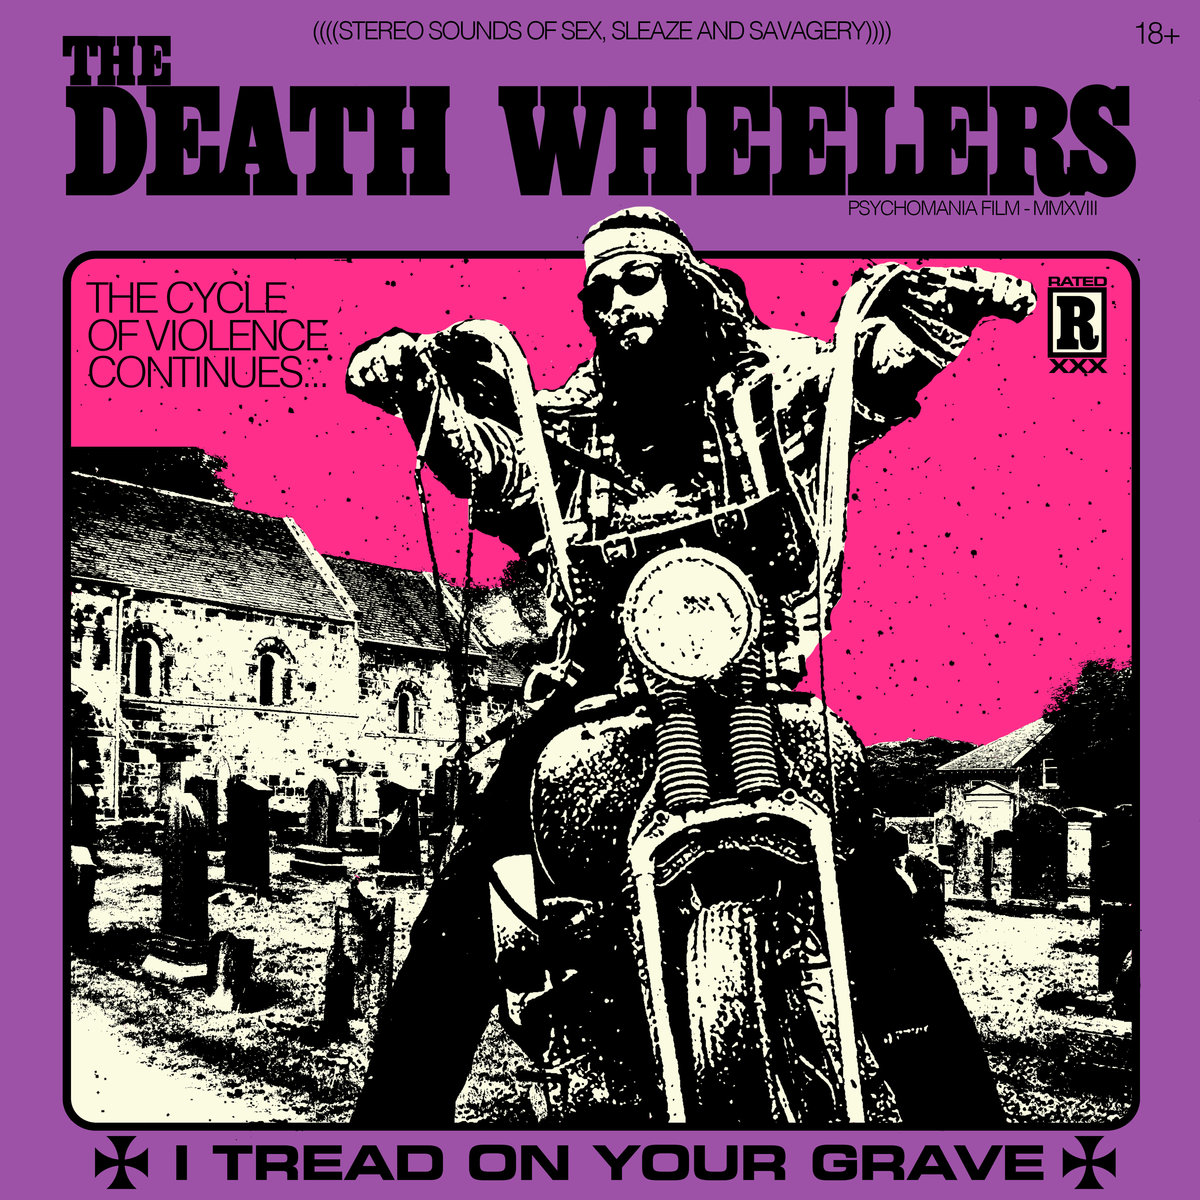 """Album Review: I Tread in Your Grave by The Death Wheelers - Well, let's kick this week off right in the mouth with a steel toed boot, dose the fire with some Crown Royal, and ride off into the night smoking reefer with an undead vampire chick on the back of our blood-fueled motorcycles! Well, at least, that's what The Death Wheelers would want us to do. And judging by the sounds of their debut full-length, """"I Tread on Your Grave,"""" we probably shouldn't argue with them. This instrumental (ANOTHER instrumental review, you ask? Better GODDAMN believe it, I answer.) quartet from The Great White North, sound like anything but your typical Canadian nice guys. If the band name being the alternate title of the 1973 film """"Pyschomania"""", for-the-juggular album title, grindhouse-style artwork, and song names such as """"Roadkill 69"""" or """"Motö Vampiro""""didn't give that away for you, perhaps the sypnosis of the record will:  Decimated in 1972 by local authorities, all members of The Death Wheelers, a notorious motorcycle club, have been buried at the Surrey cemetery. But the time has come and they have risen for their last ride. They're back from the grave and they're hungry for blood! Nothing can stop this gang of living dead from recruiting new members as they travel coast to coast to find the filthiest, nastiest, trashiest individuals to join their ranks. Their goal, assemble a legion of 13 discycles to seek revenge on the pigs that dismantled the club and send them to their graves. The cycle of violence continues. Serving as a soundtrack to a beautifully grimy 70's bikespoitation film narrative; this 11-track record weaves in and out of nasty grooves consisting of fuzzy-yet-stabbing-guitar licks, Harley Davidson-style bass rumbles, and drums that will raise the dead. All of this in the style fo some evil, swampy, blues, but packed with a Mortal-Kombat style flying kick-punk rock edge reminiscent of Raw Power to wake your ass up in the morning. Now, even if you are a huge fan of sl"""